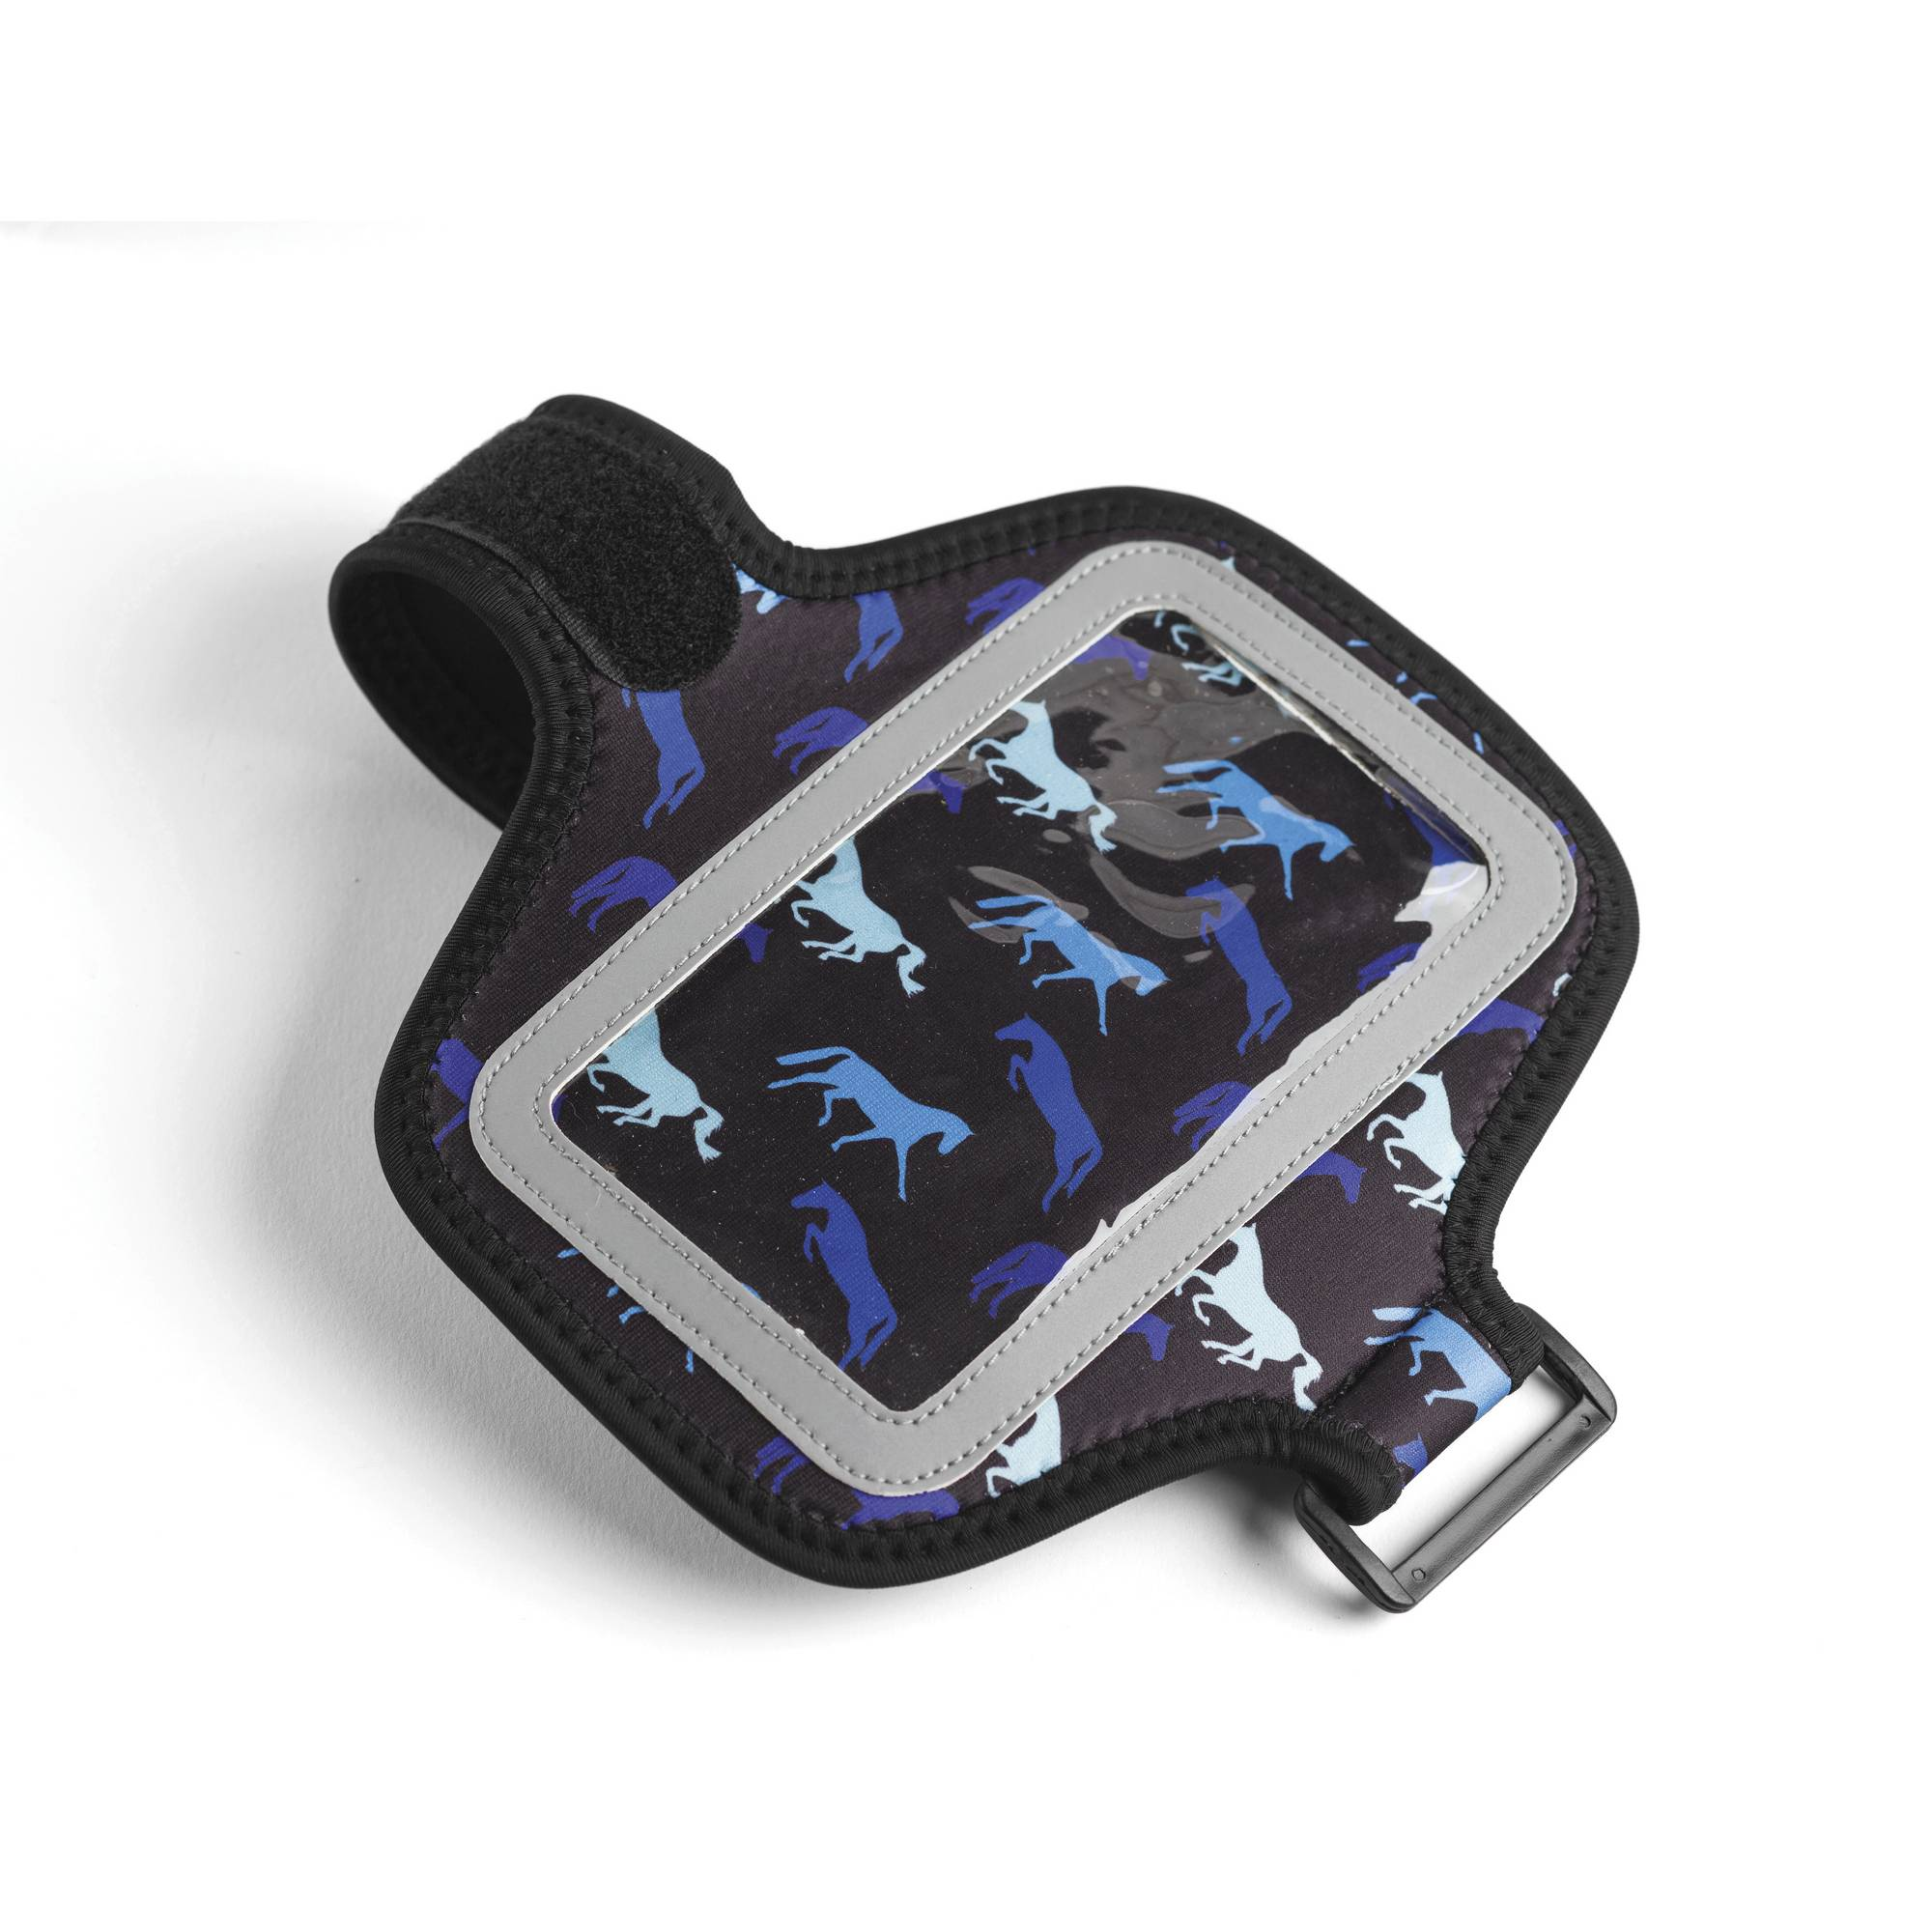 Kelley Neoprene Smartphone Case with Arm/Leg Band - Black with Shades of Blue Horses